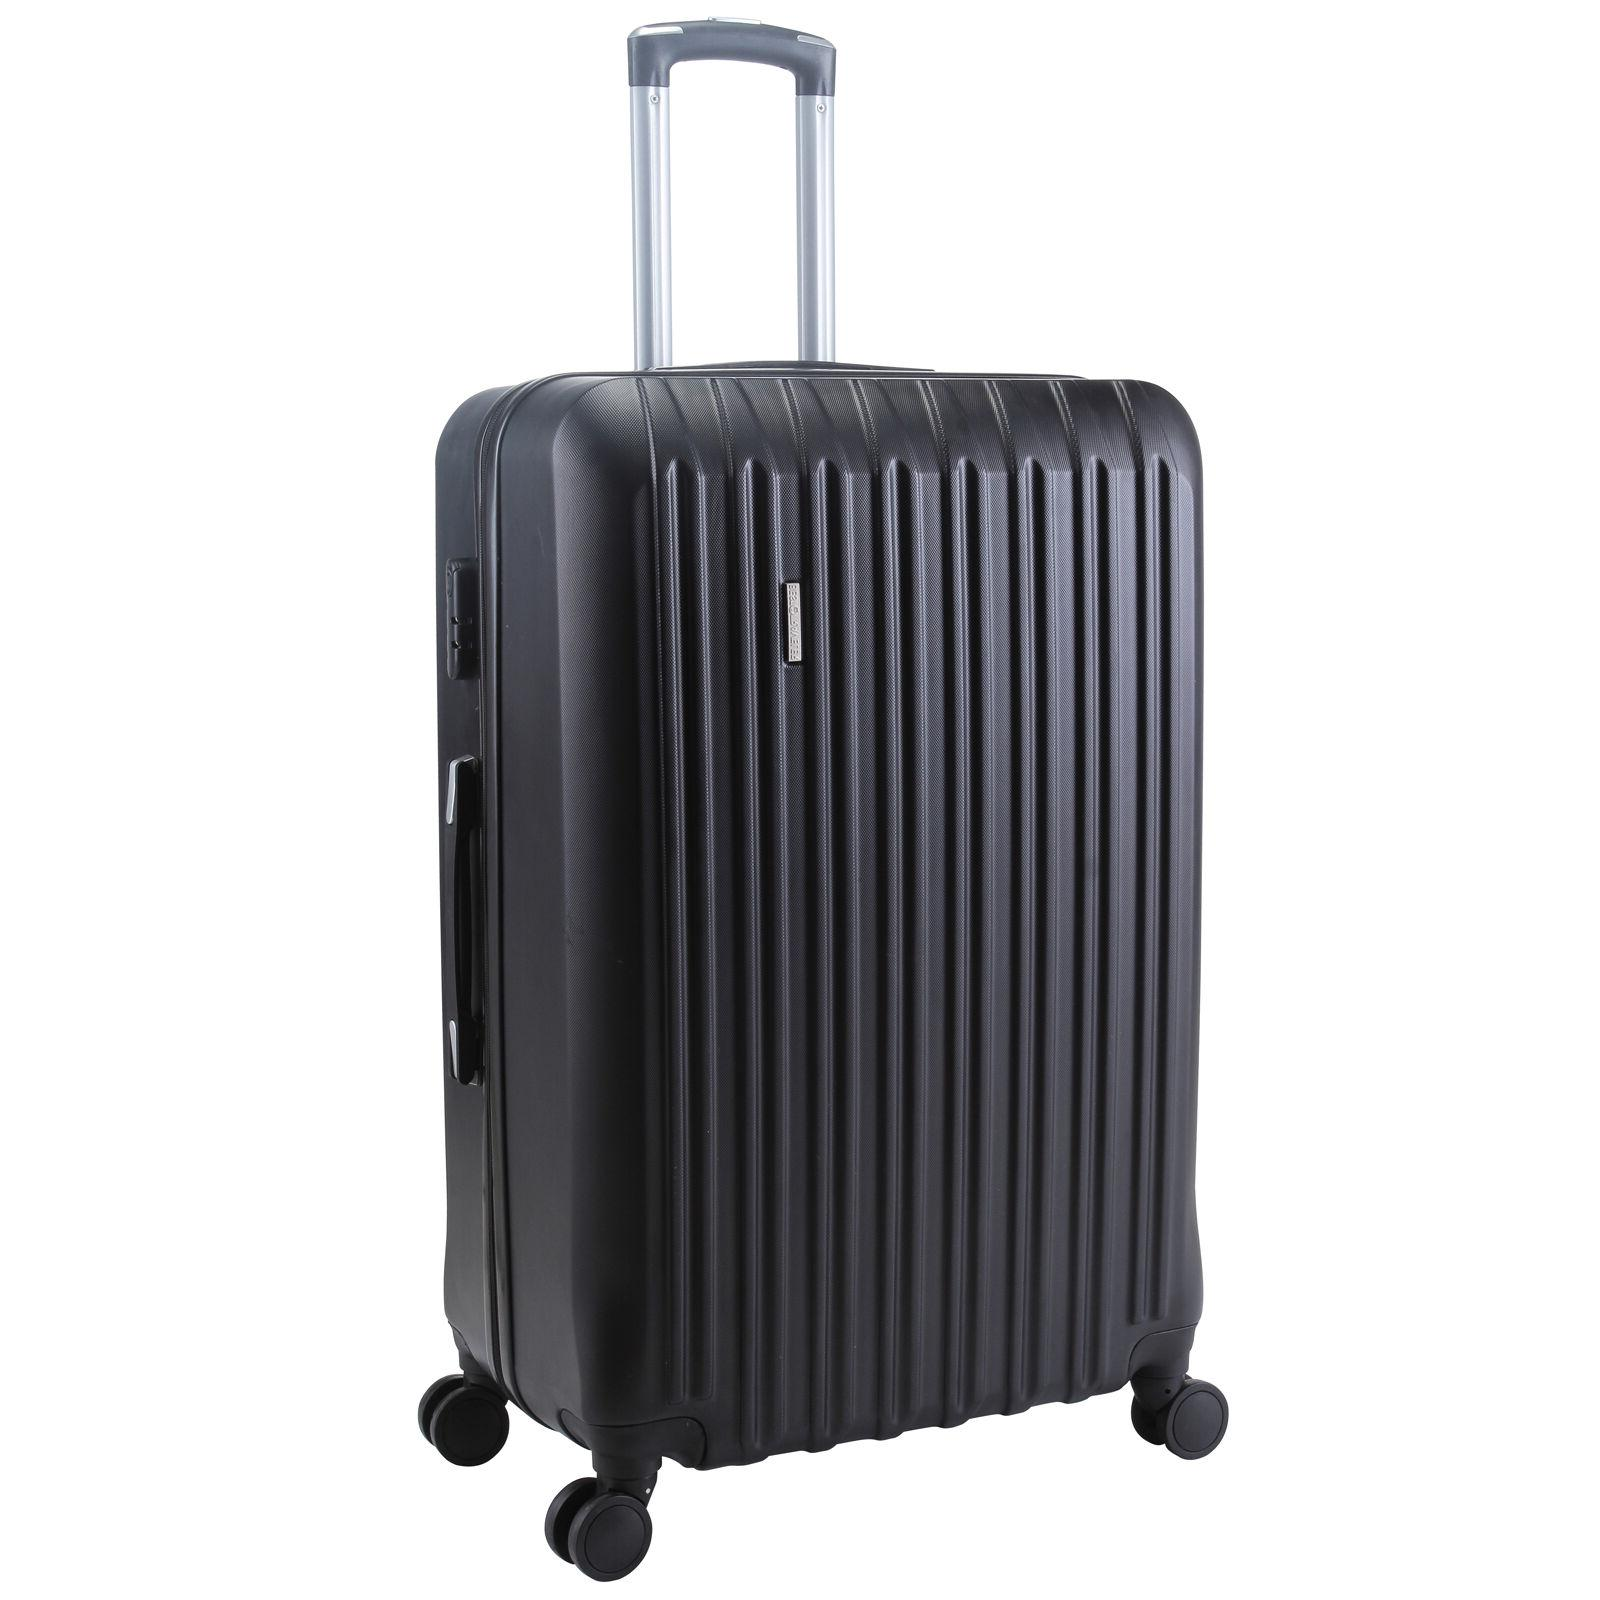 4Pcs ABS Trolley Carry On Bag